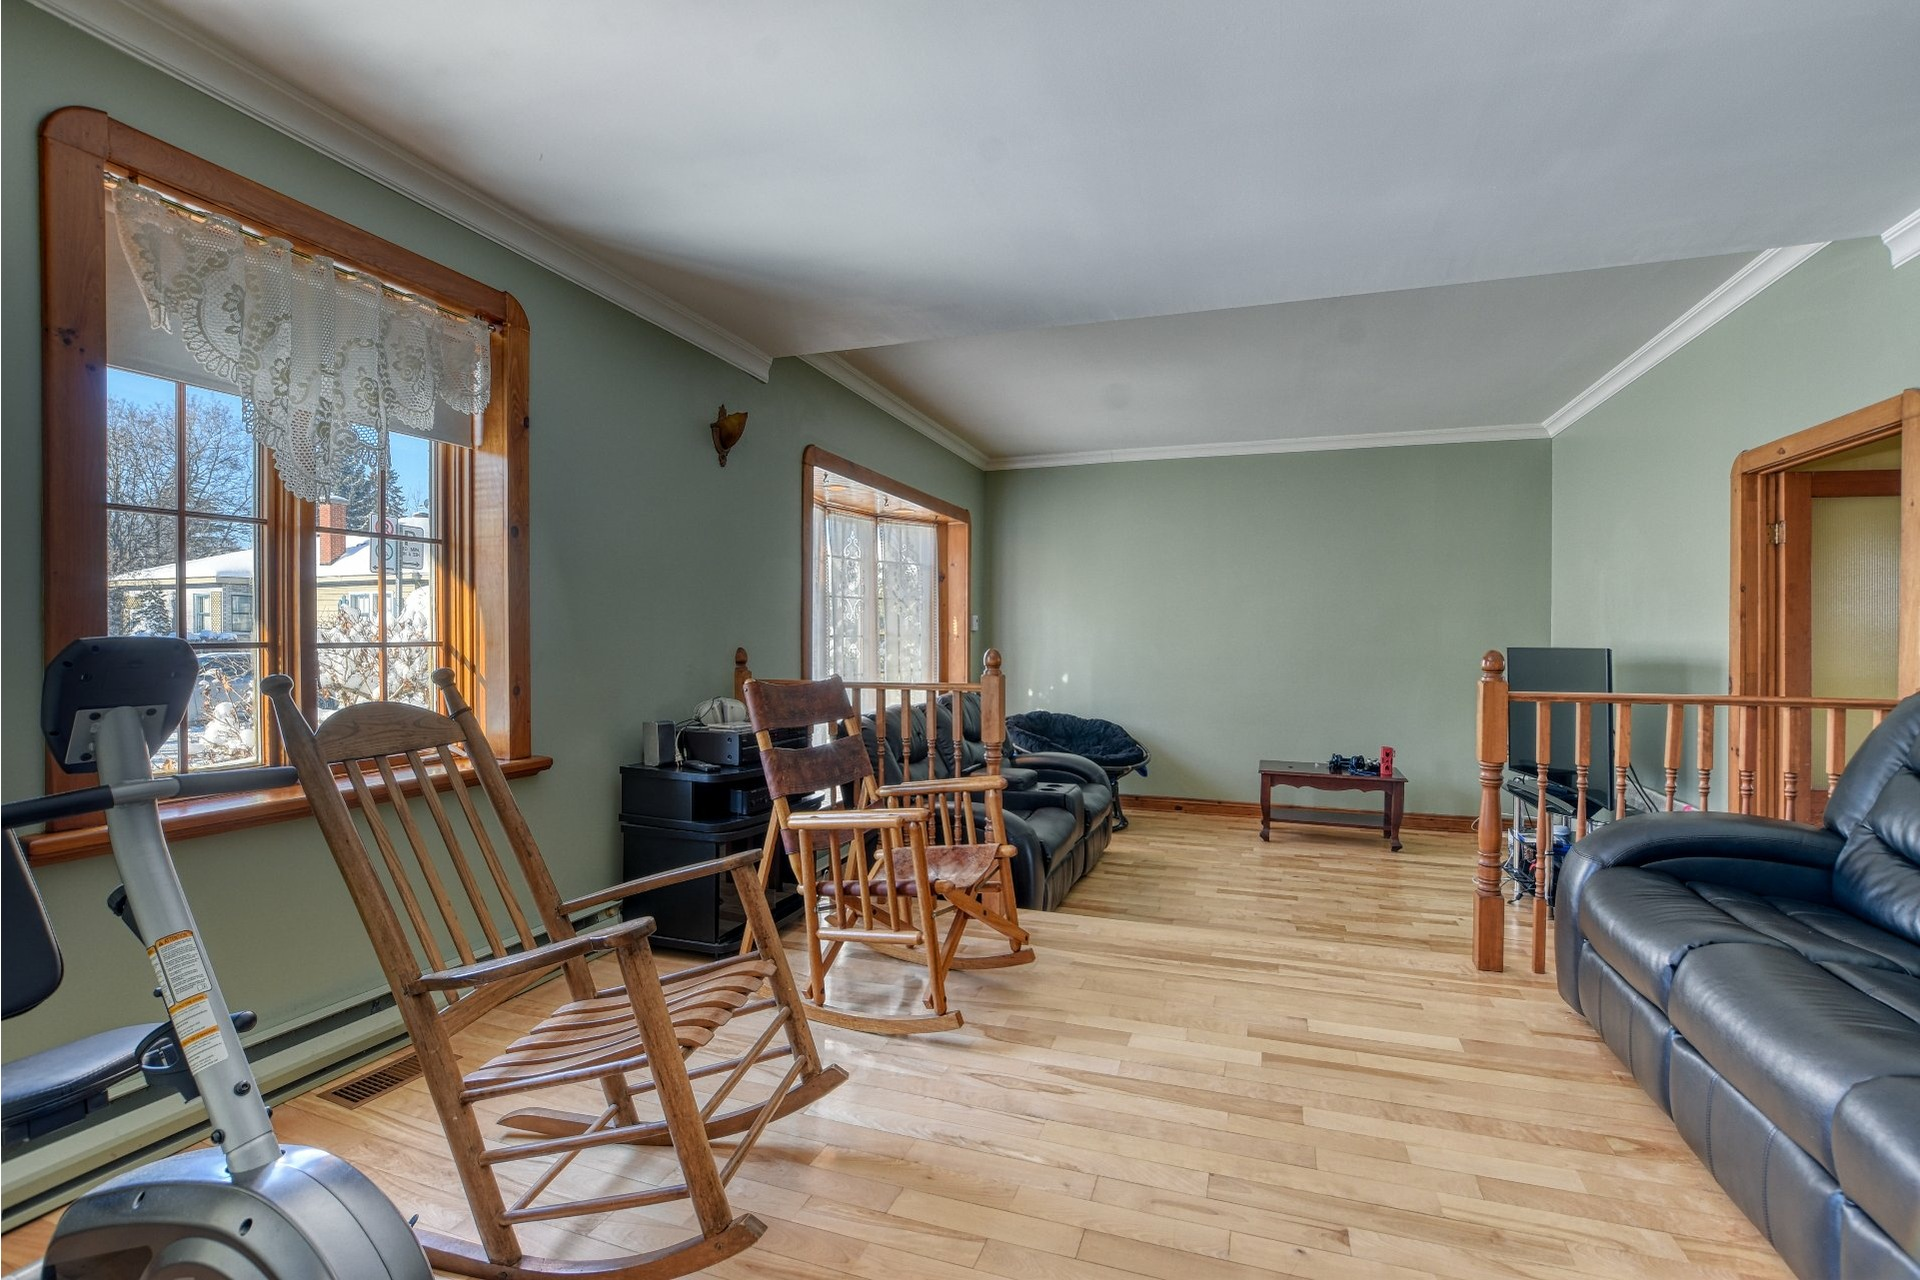 image 7 - House For sale Saint-Laurent Montréal  - 10 rooms